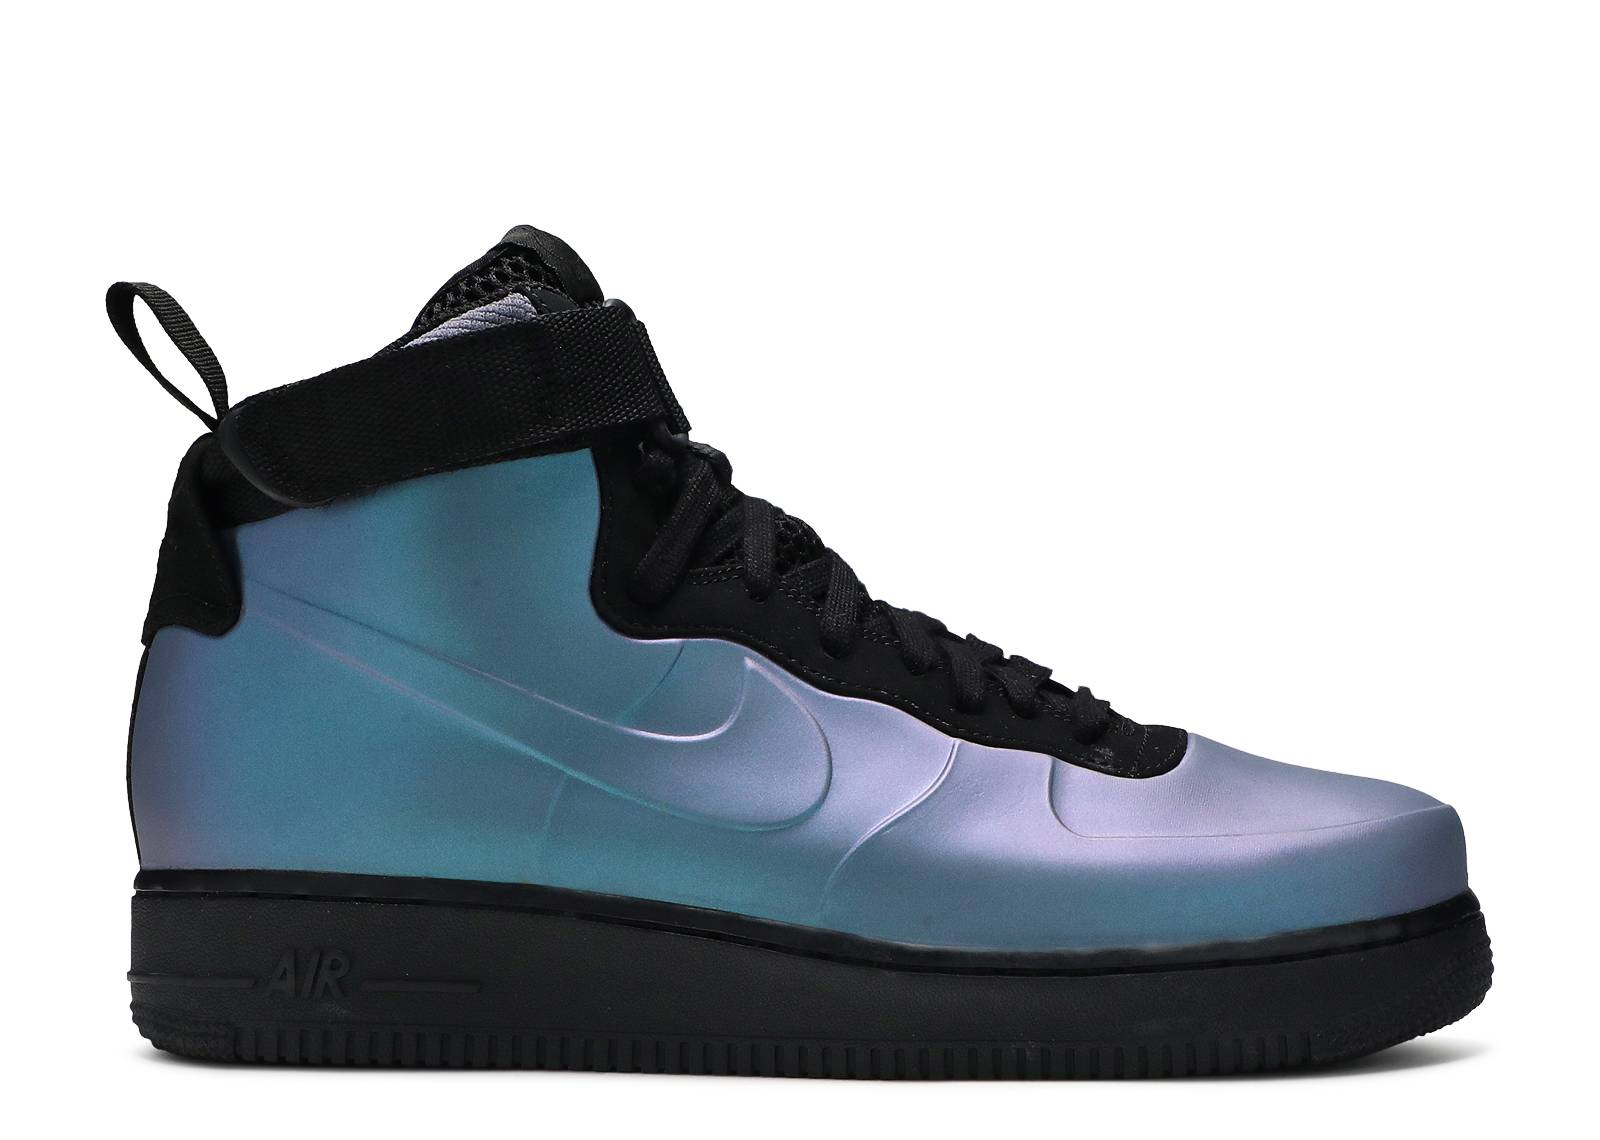 3a336f6e94d Air Force 1 Foamposite - Nike - ah6771 002 - light carbon light ...